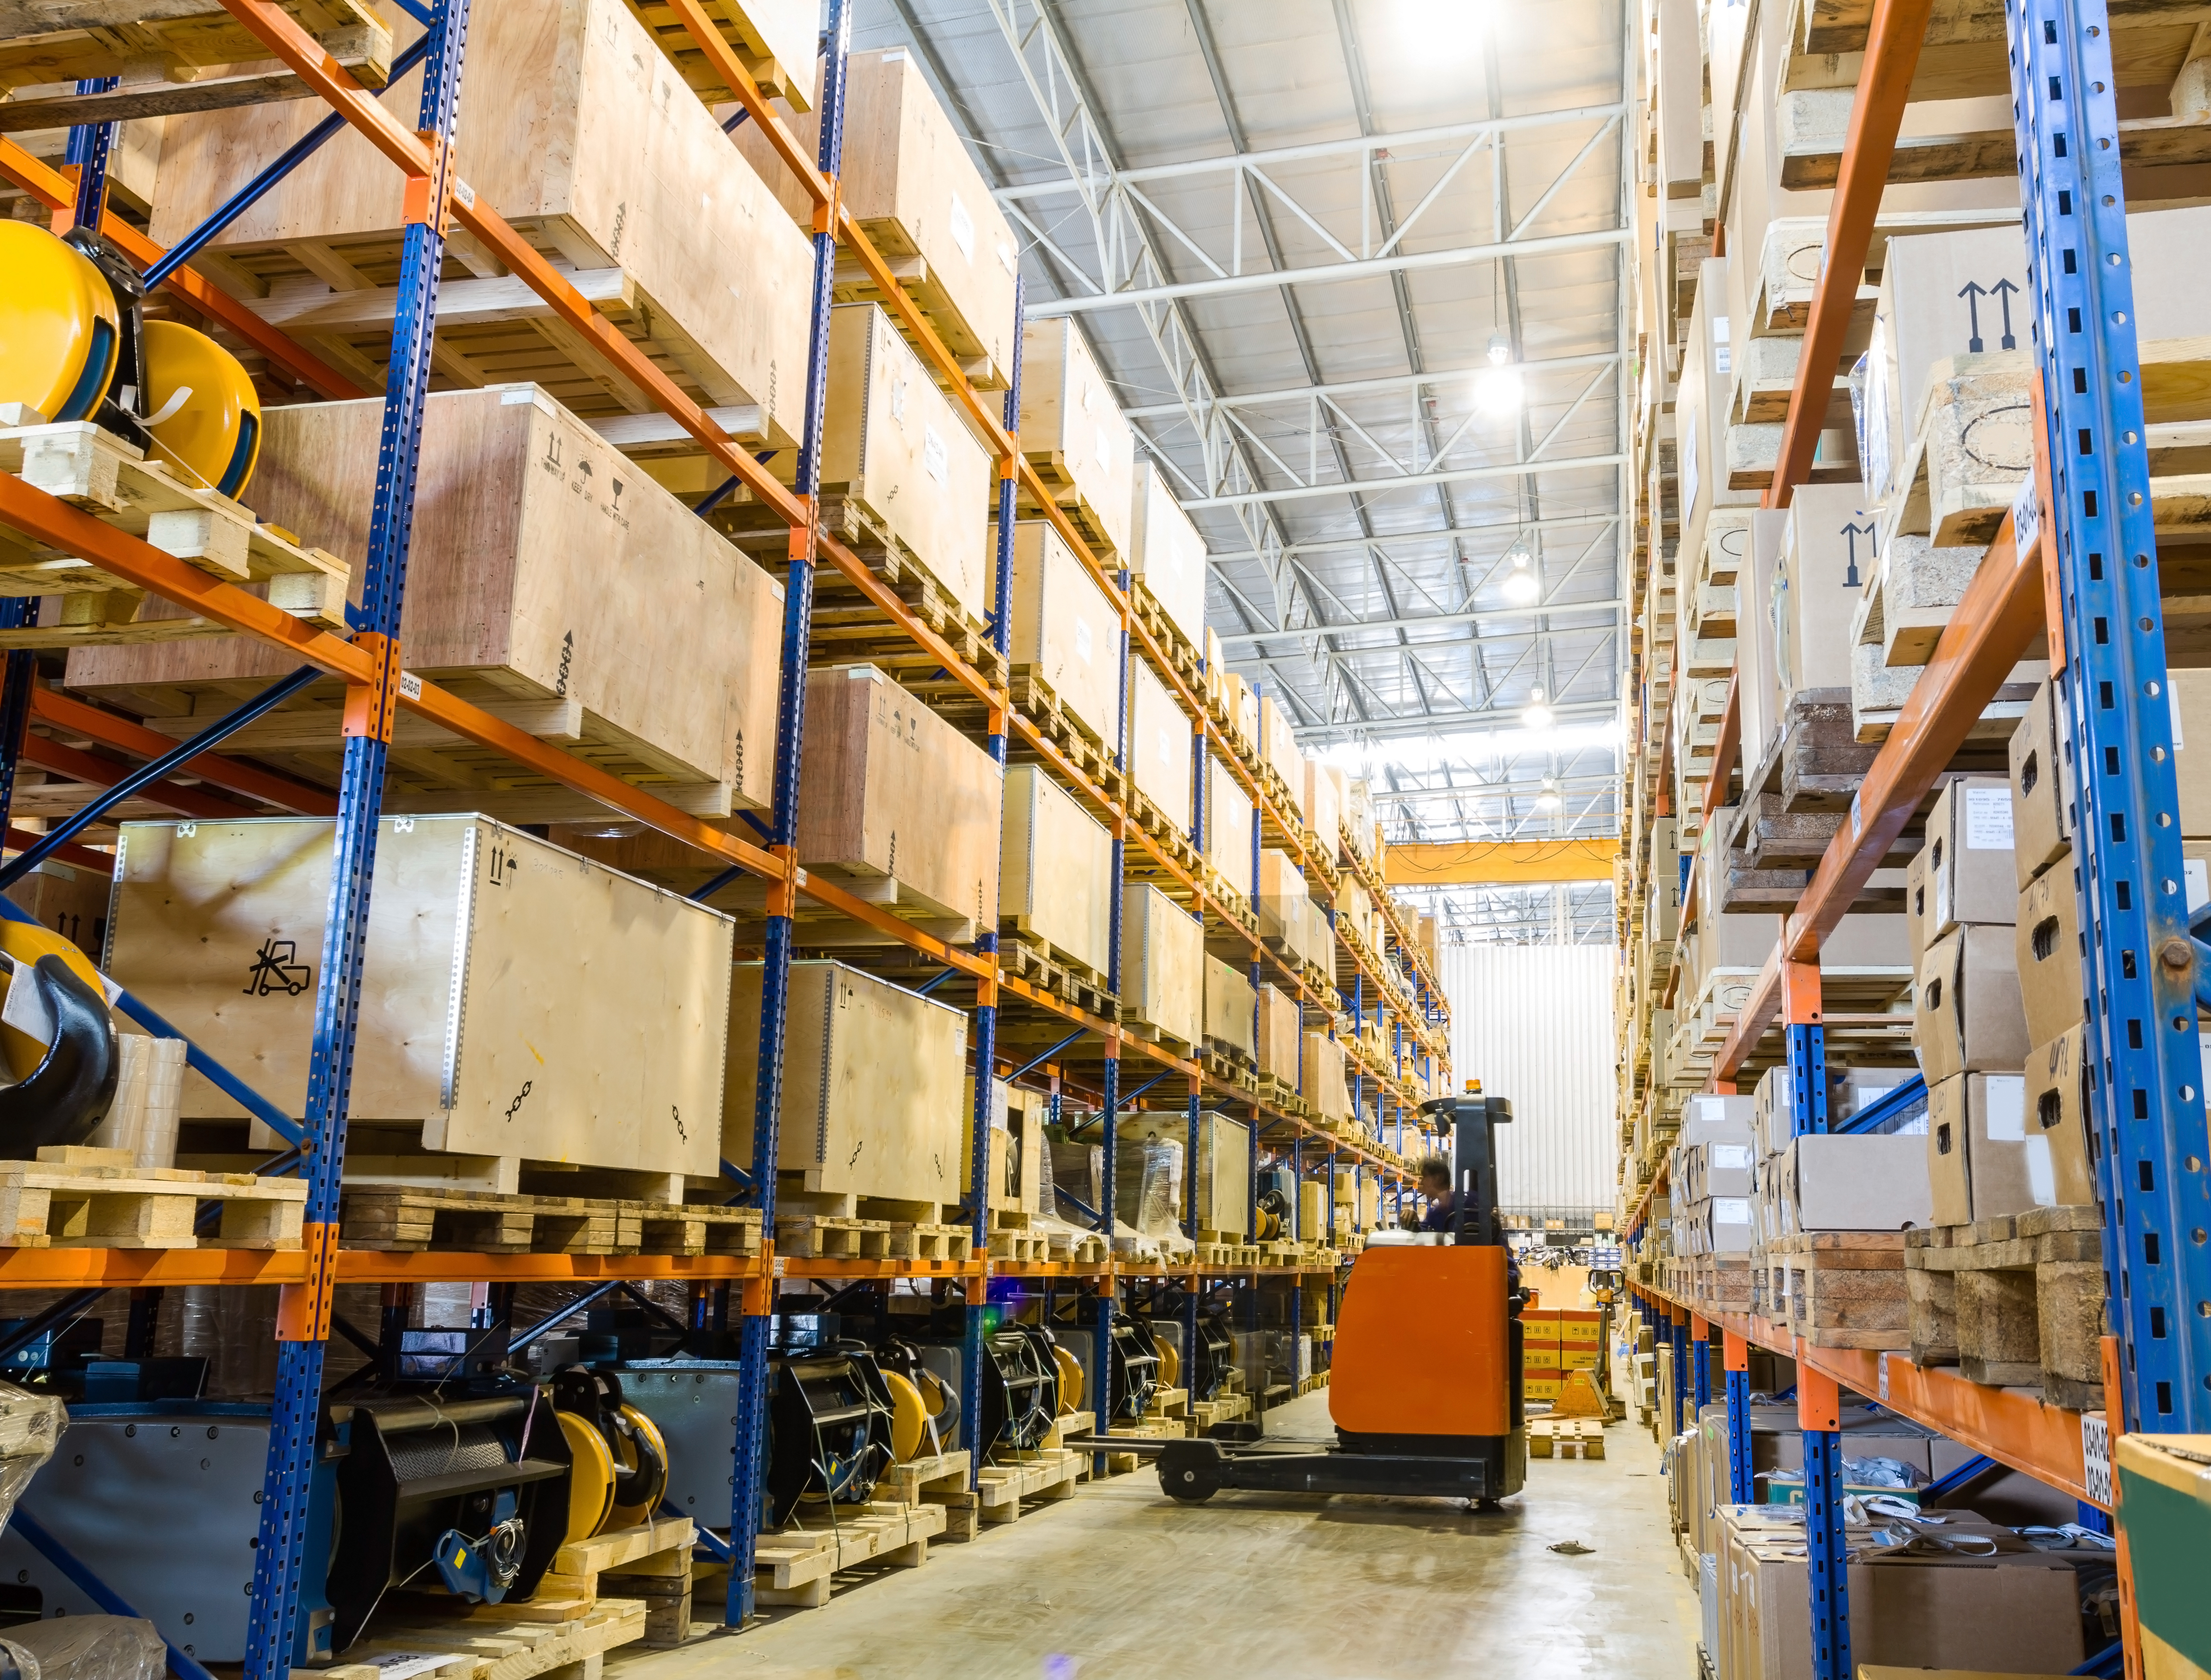 electrical supplier warehouse uses Sirius disaster recovery